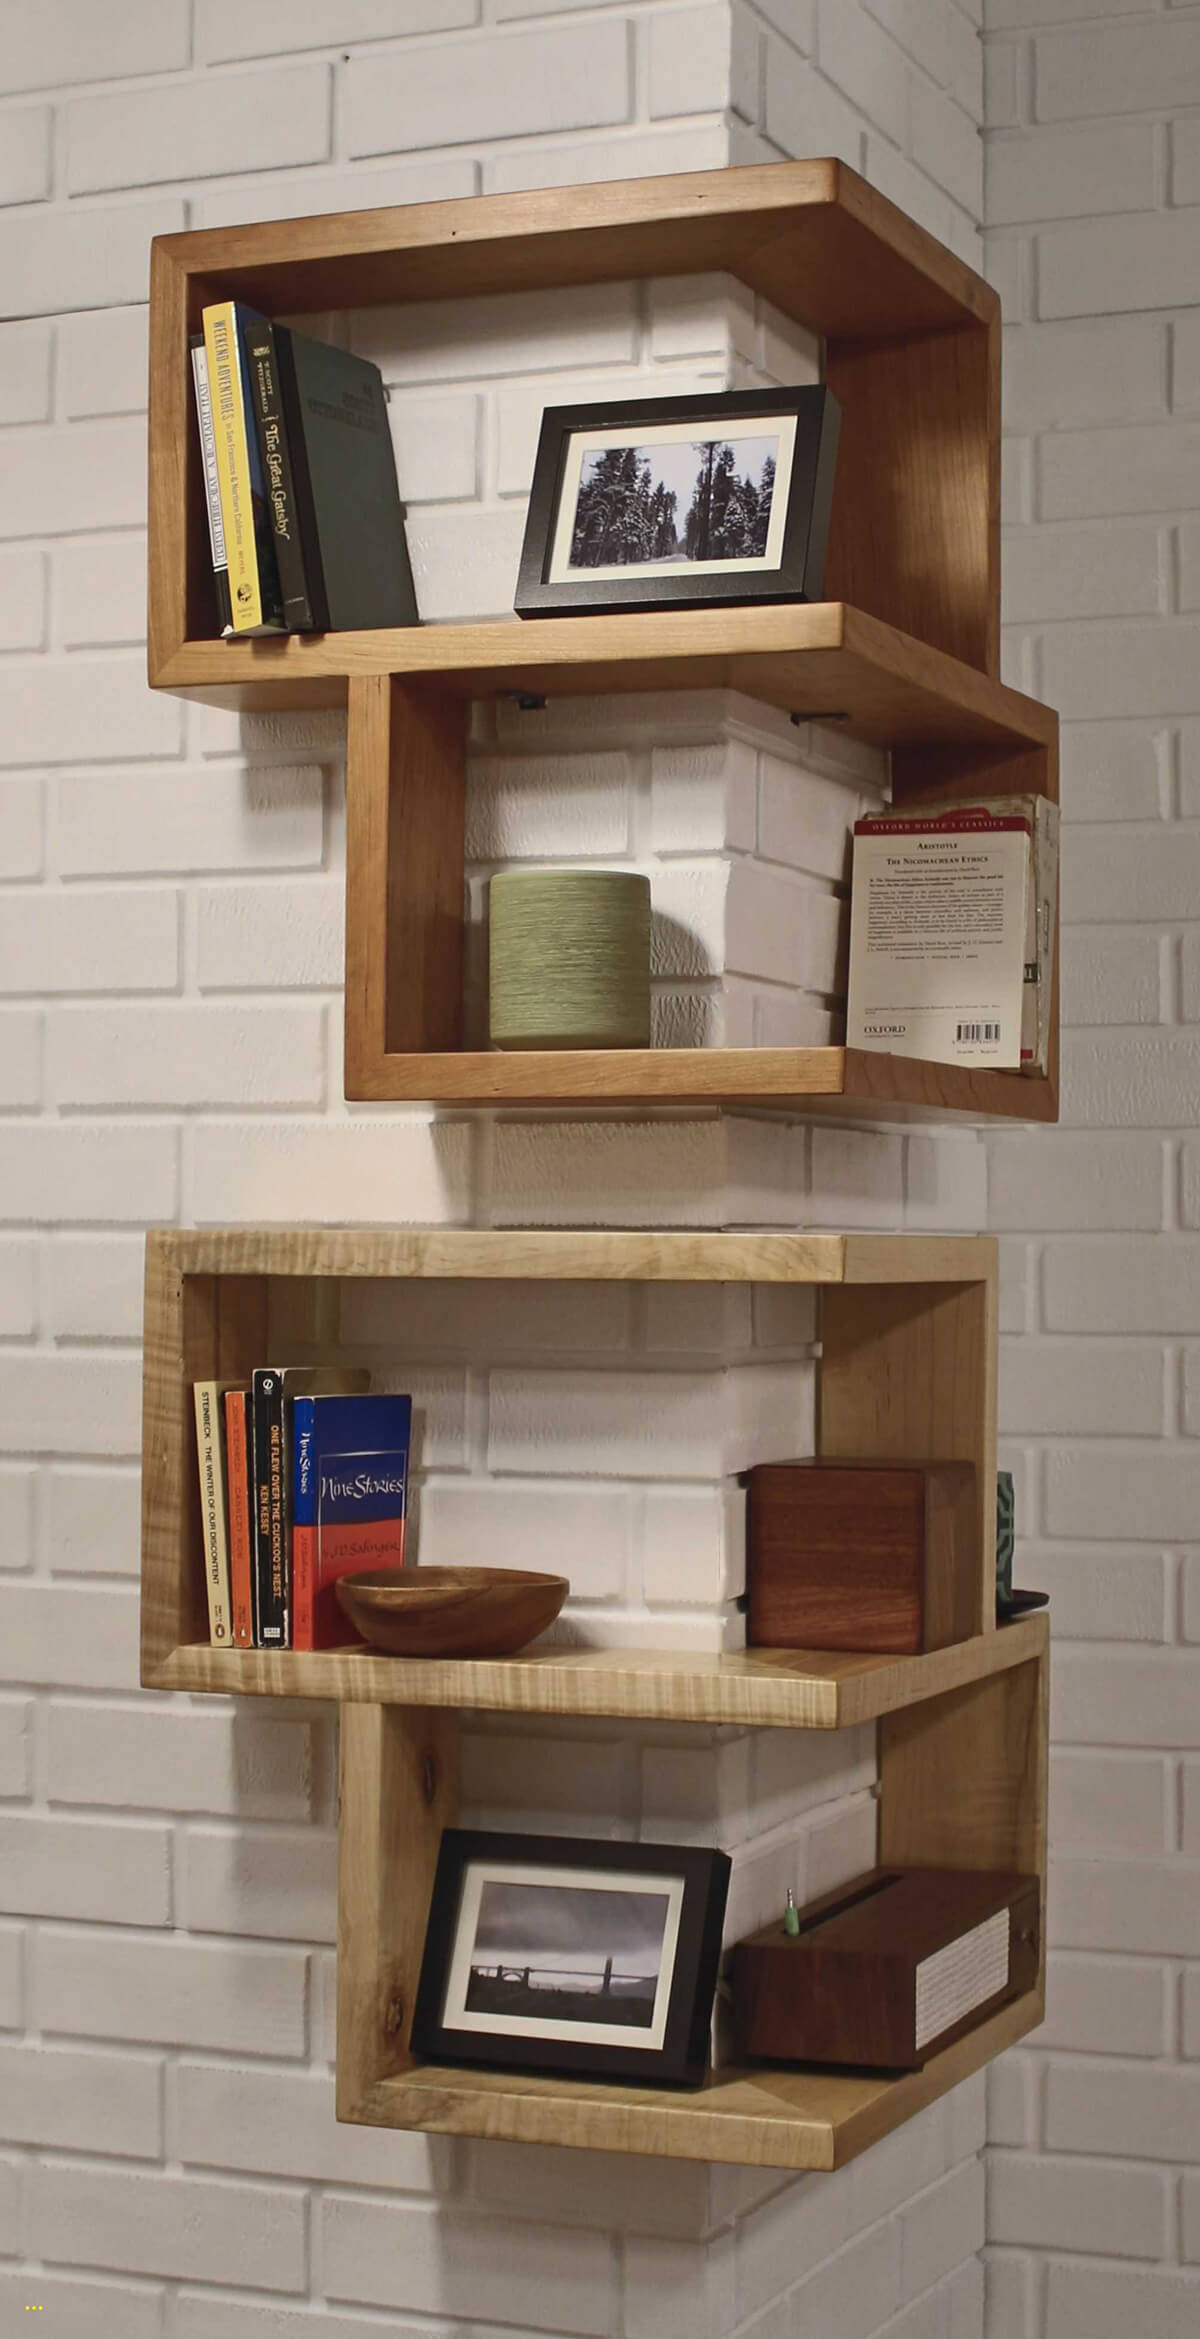 Modern Cube Wall Shelves on a Corner